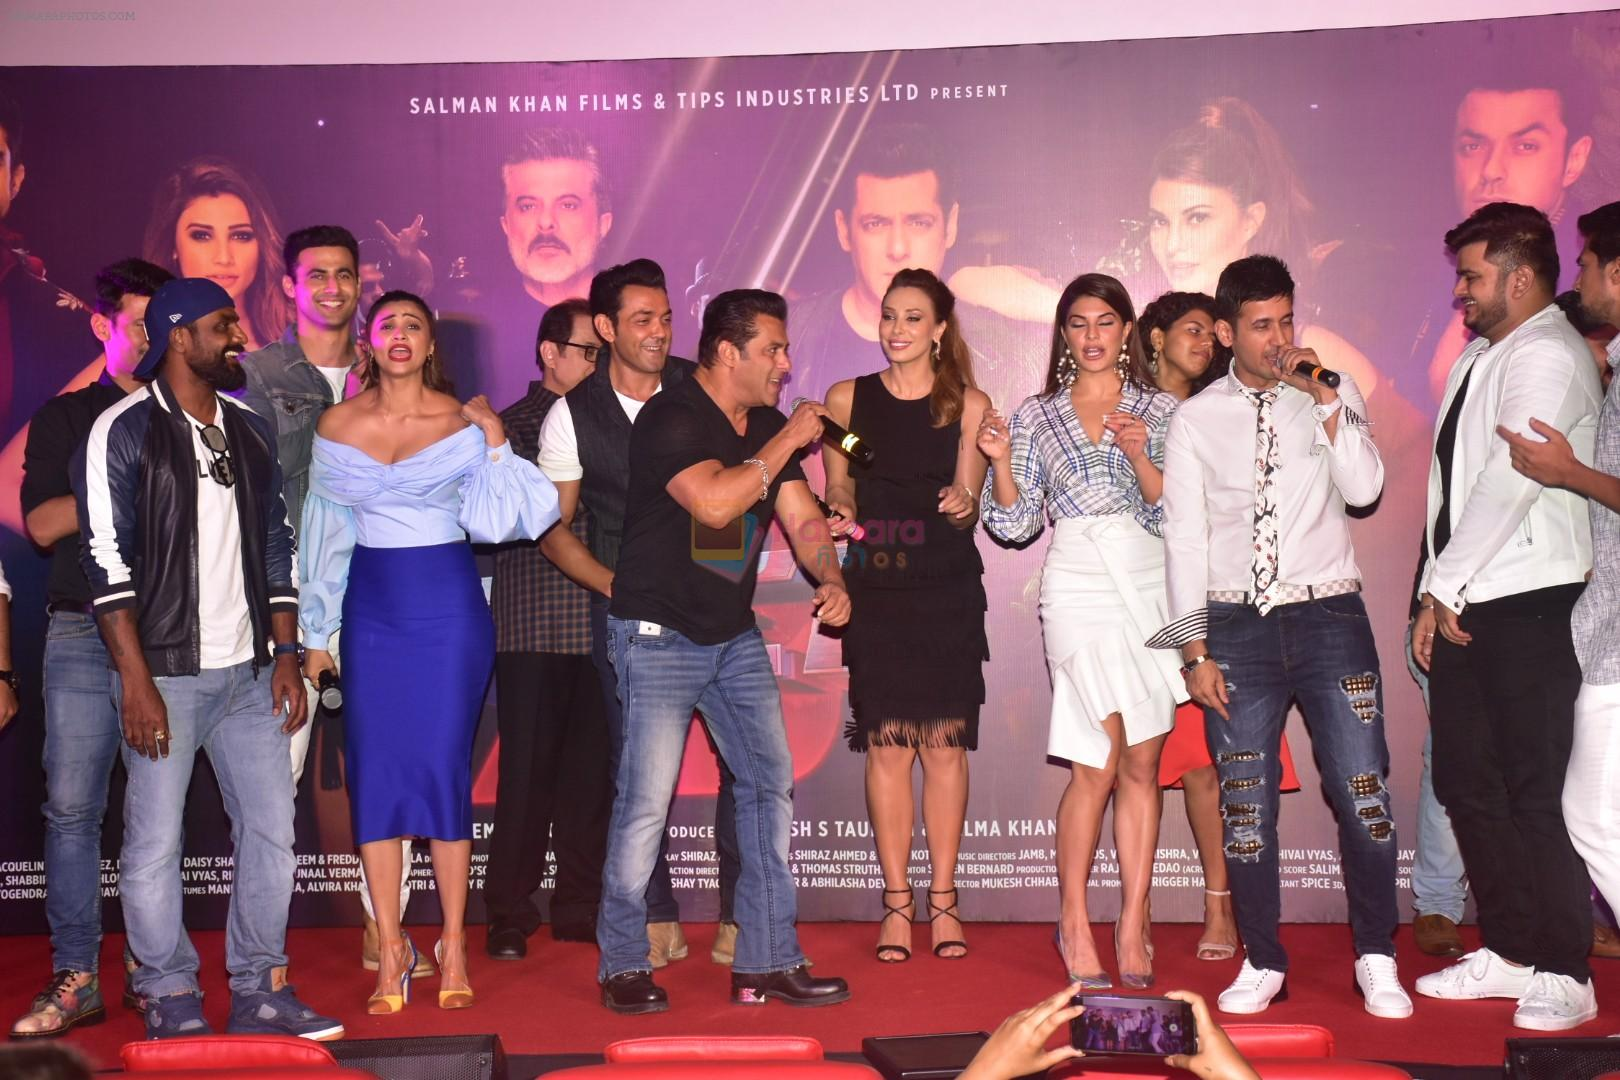 Bobby Deol, Saqib Saleem, Salman Khan, Jacqueline Fernandez, Daisy Shah, Lulia Vantur, Freddy Daruwala at the Song Launch Of Allah Duhai Hai From Film Race 3 on 1st June 2018